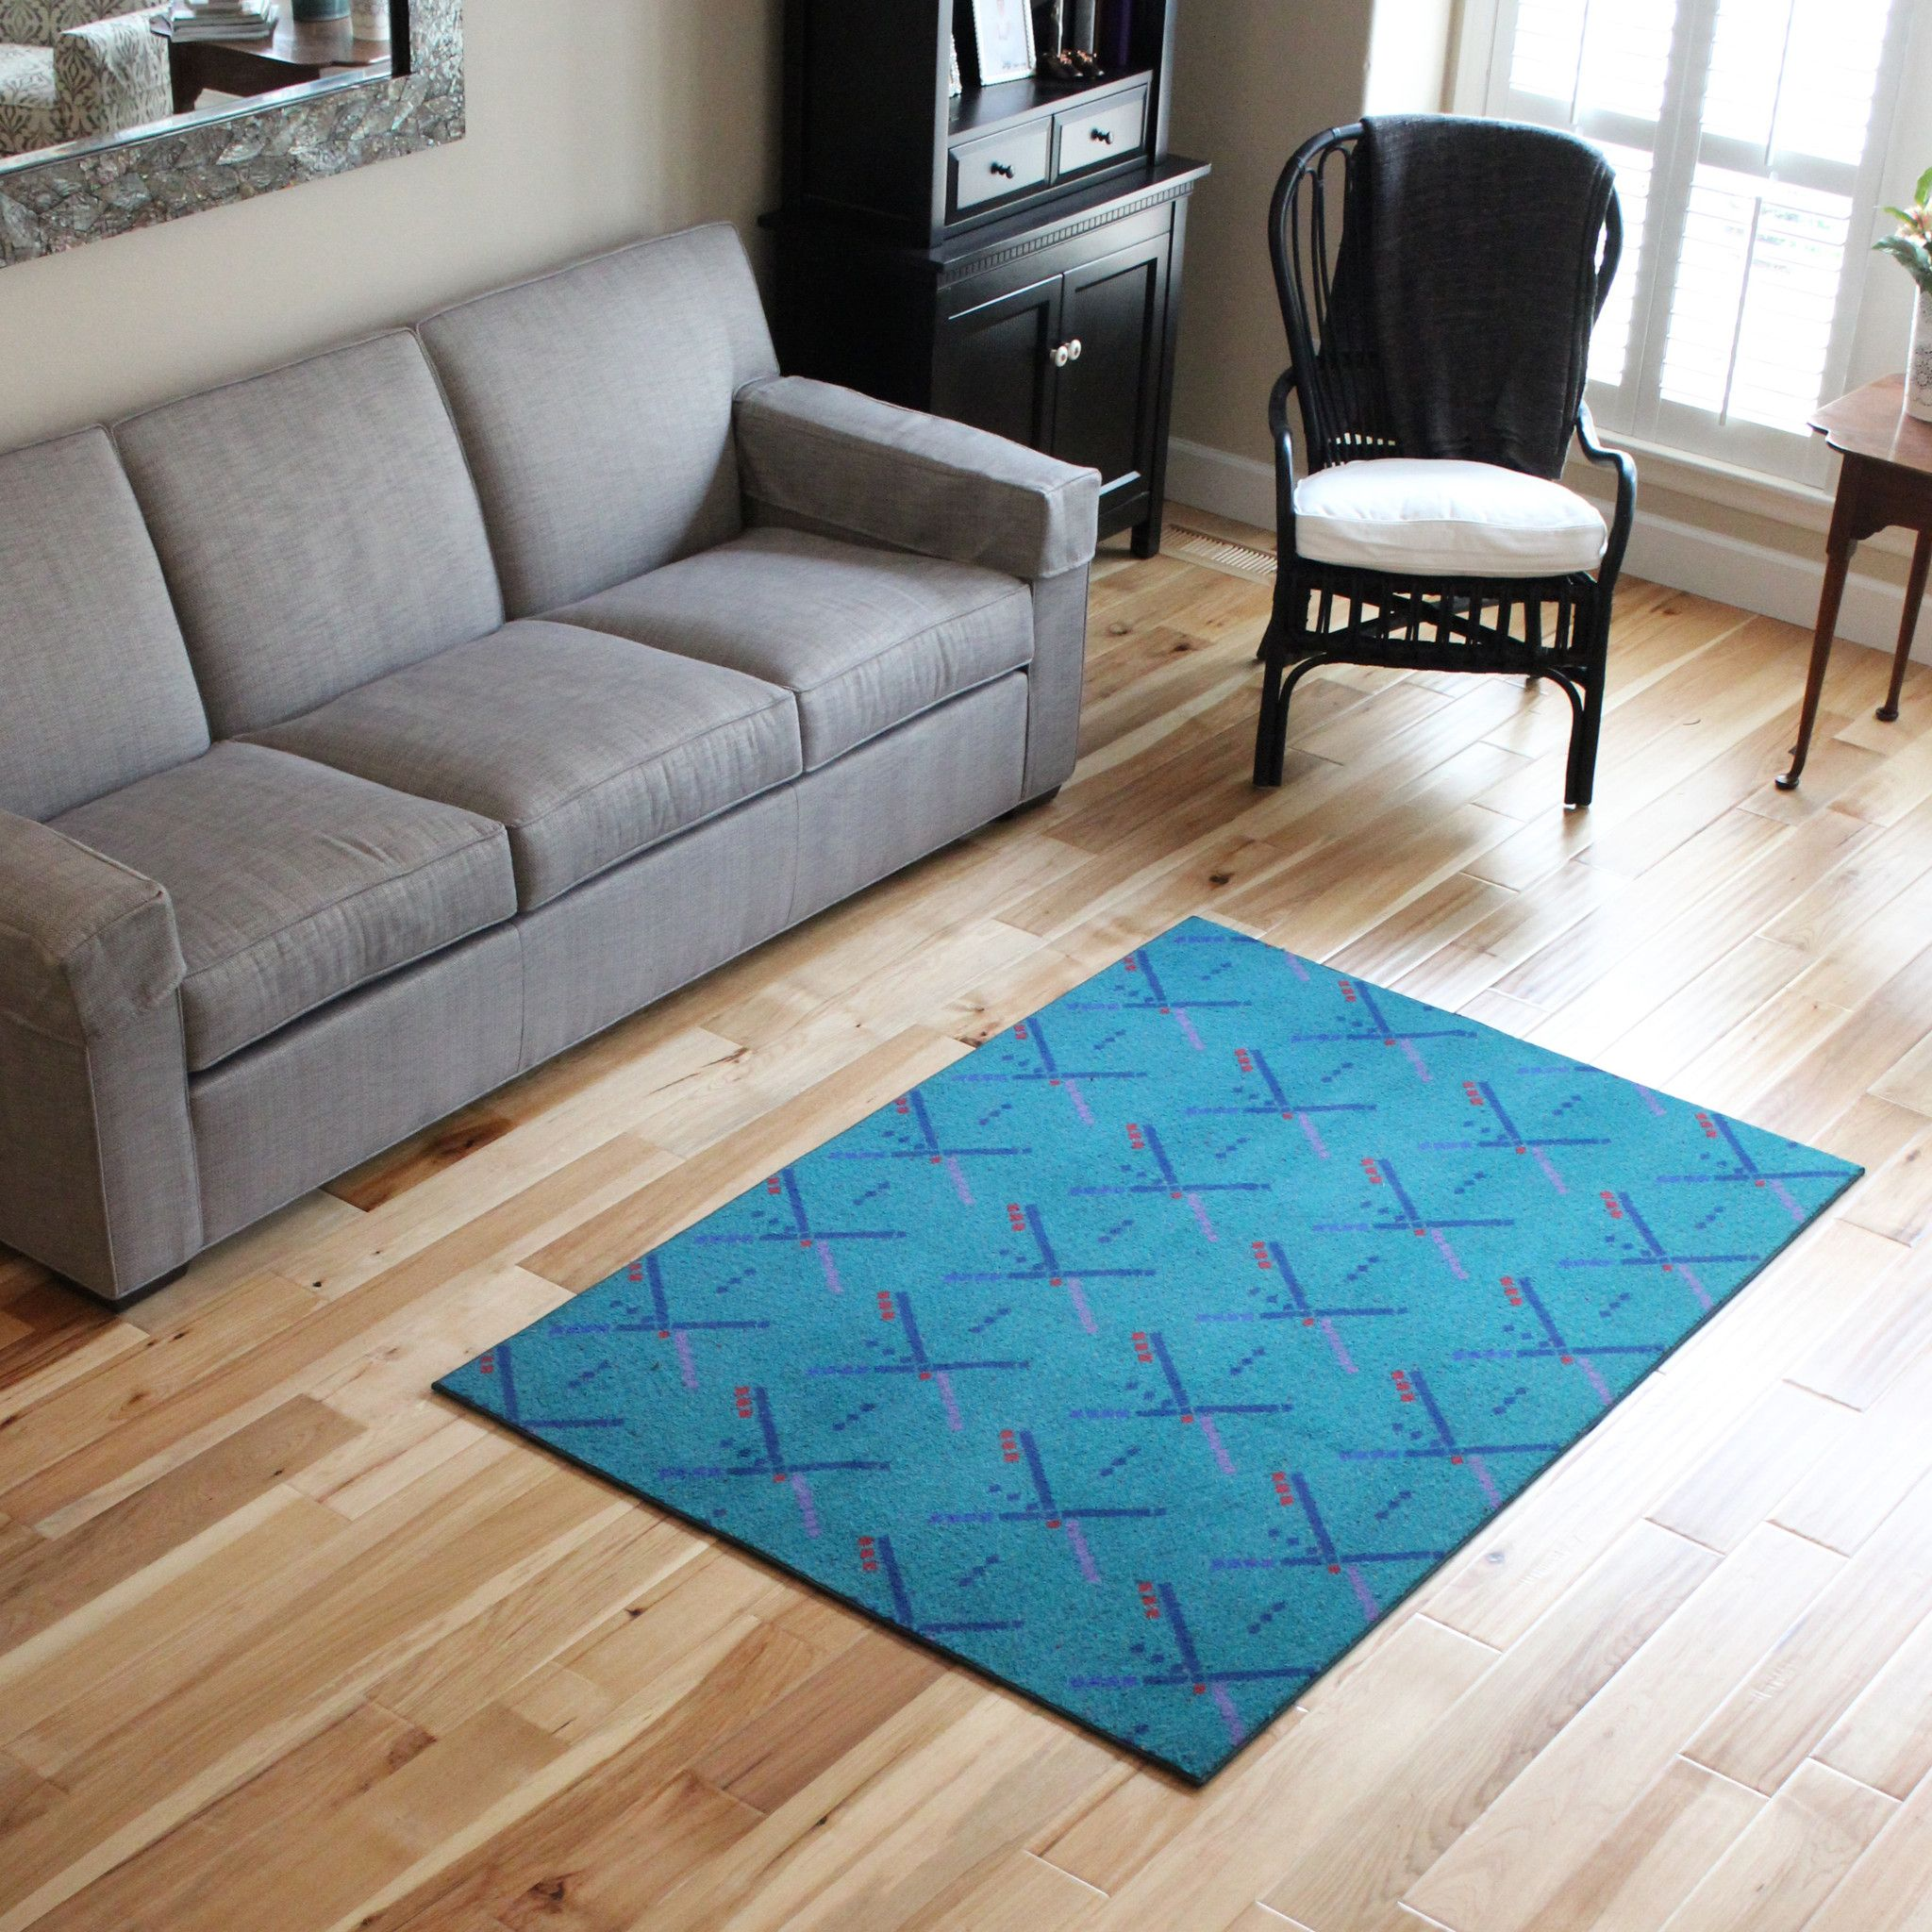 Blue 4x6 Area Rug With Images Rugs 4x6 Area Rugs Bathroom Rugs